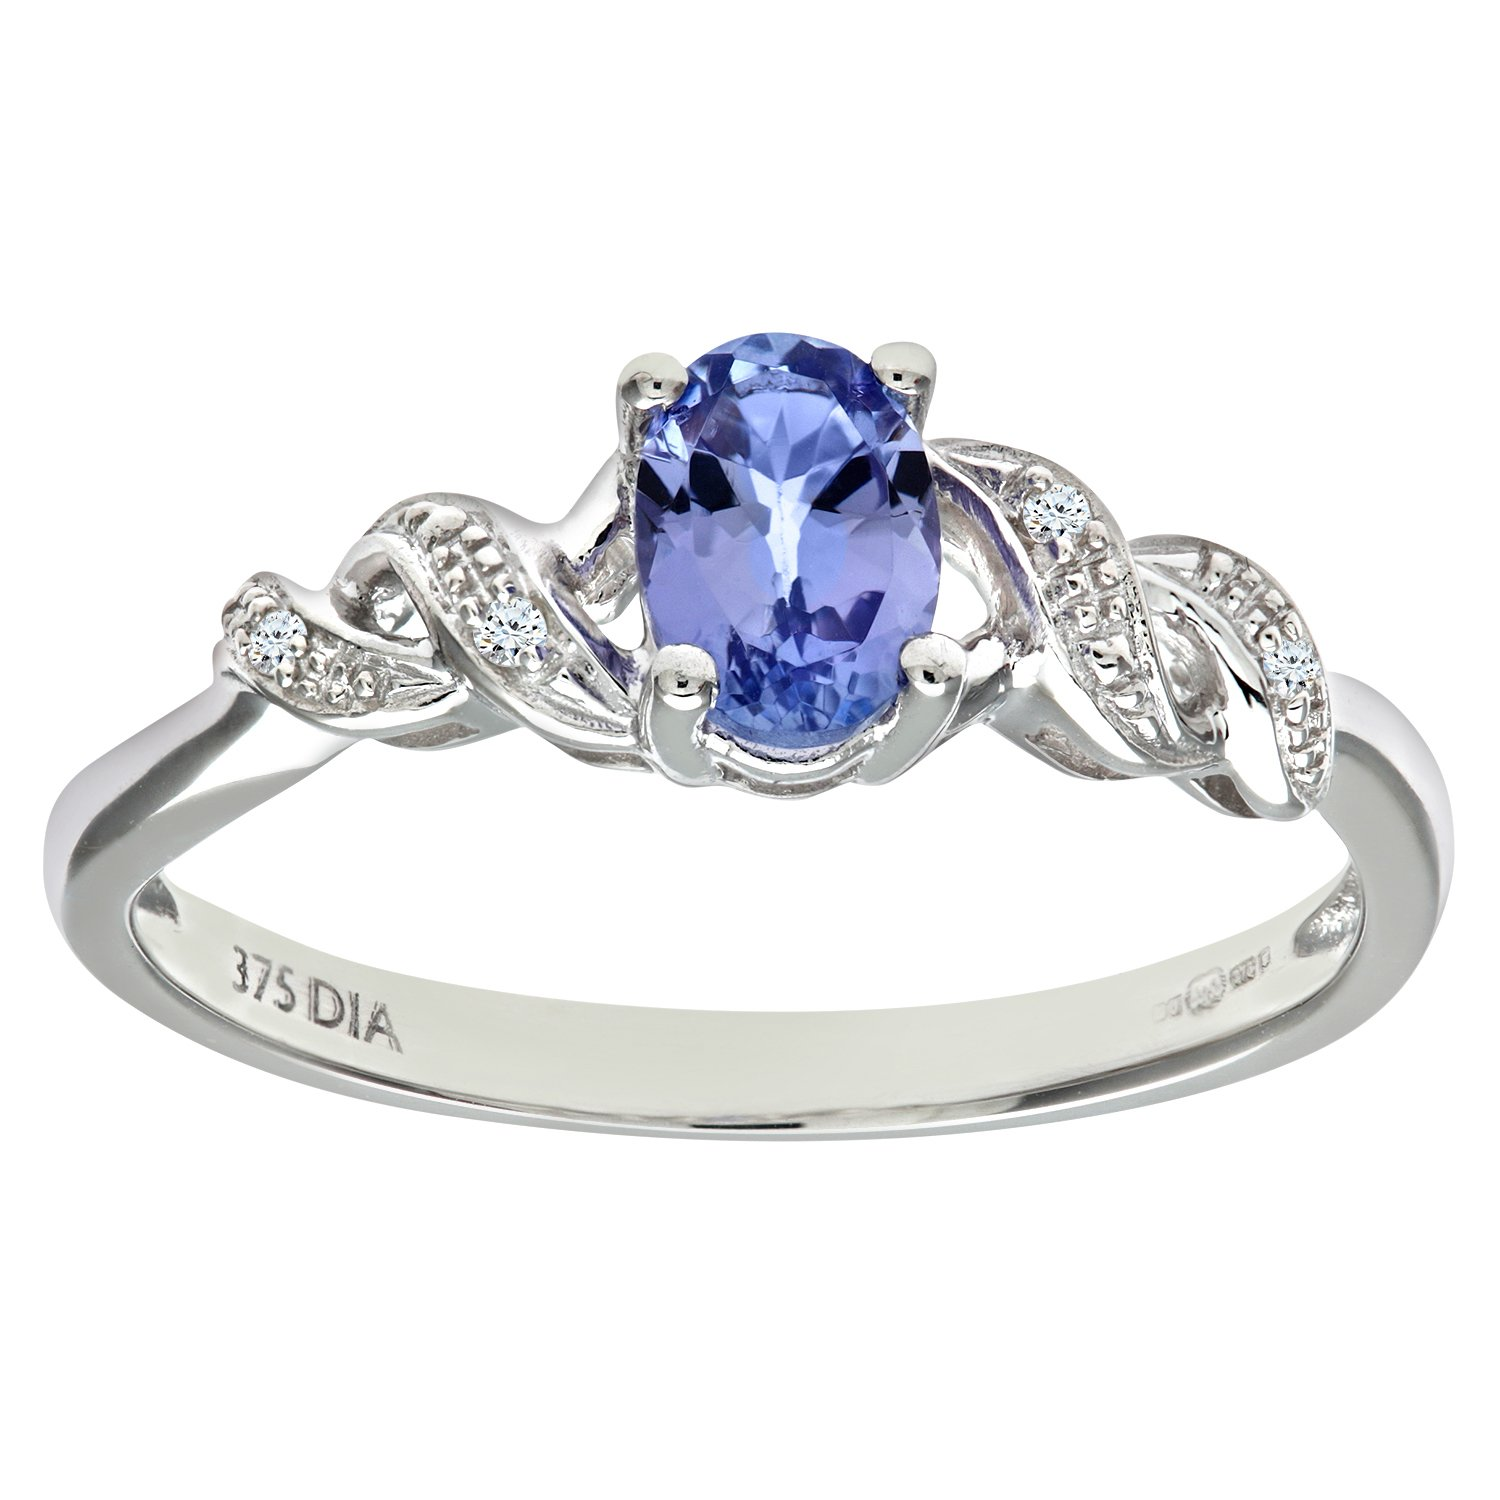 pretty engagement november jewelry august buy exquisite birthstone rings online category